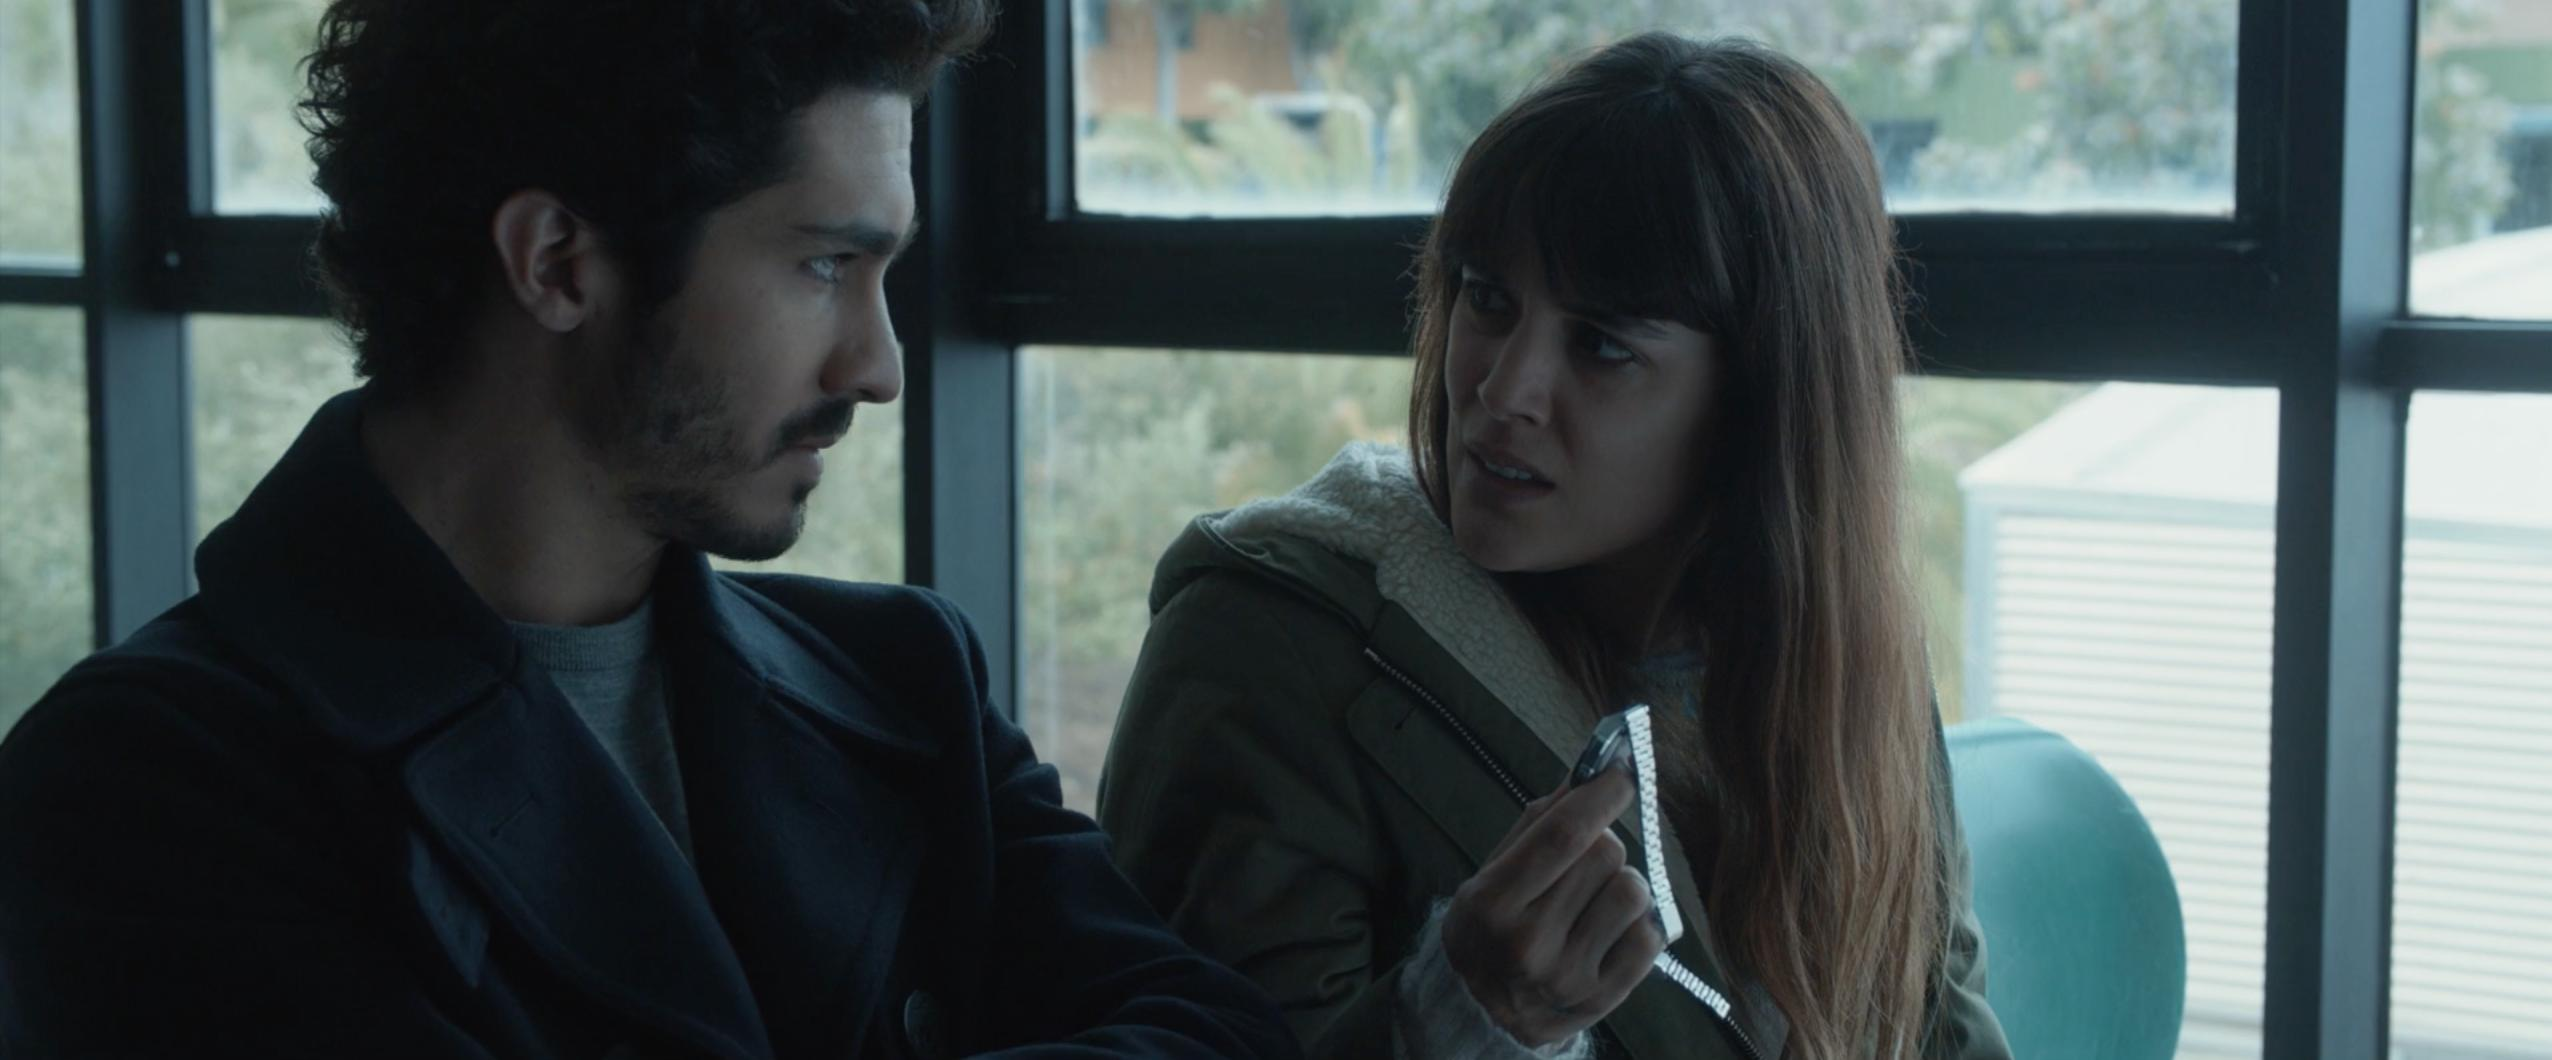 Adriana Ugarte and Chino Darín in Durante la tormenta (2018)